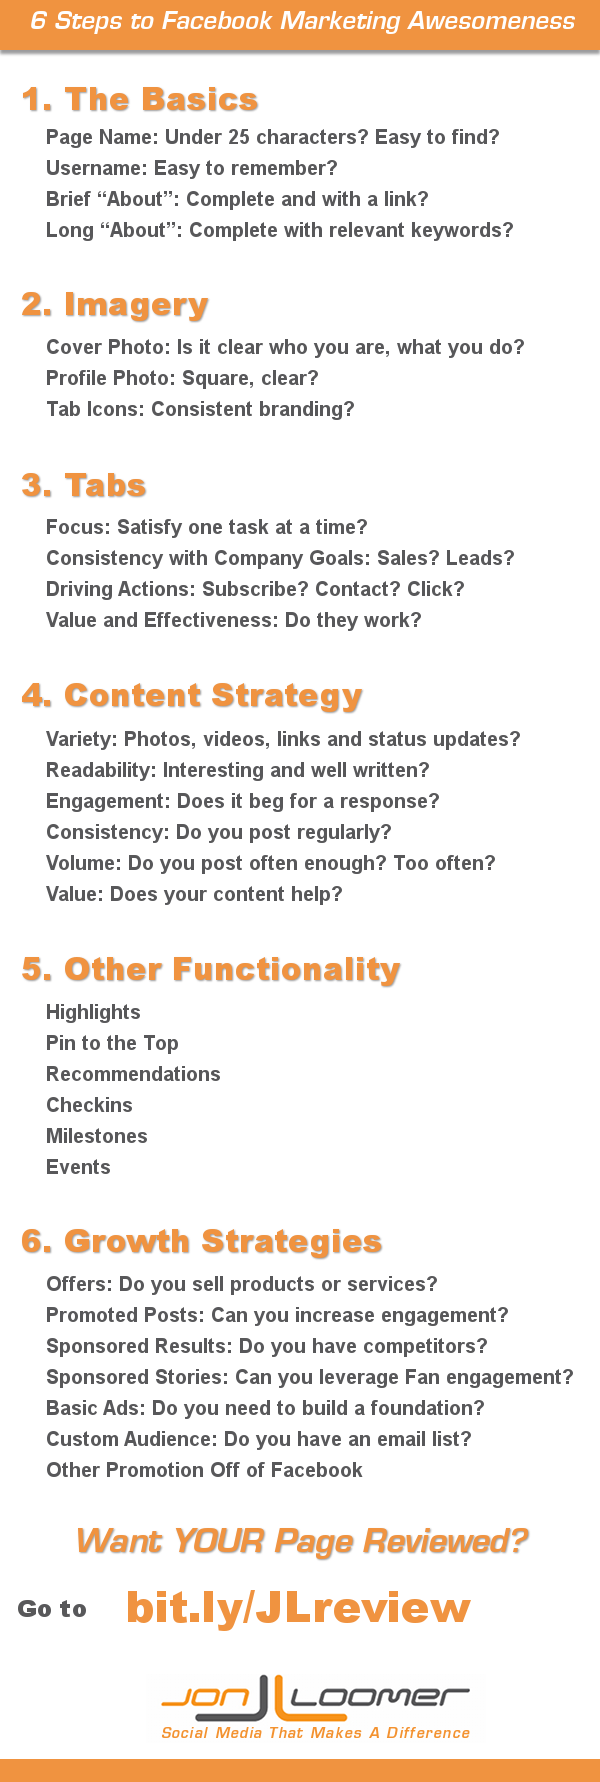 6 steps to facebook marketing awesomeness 6 Steps to Facebook Marketing Awesomeness